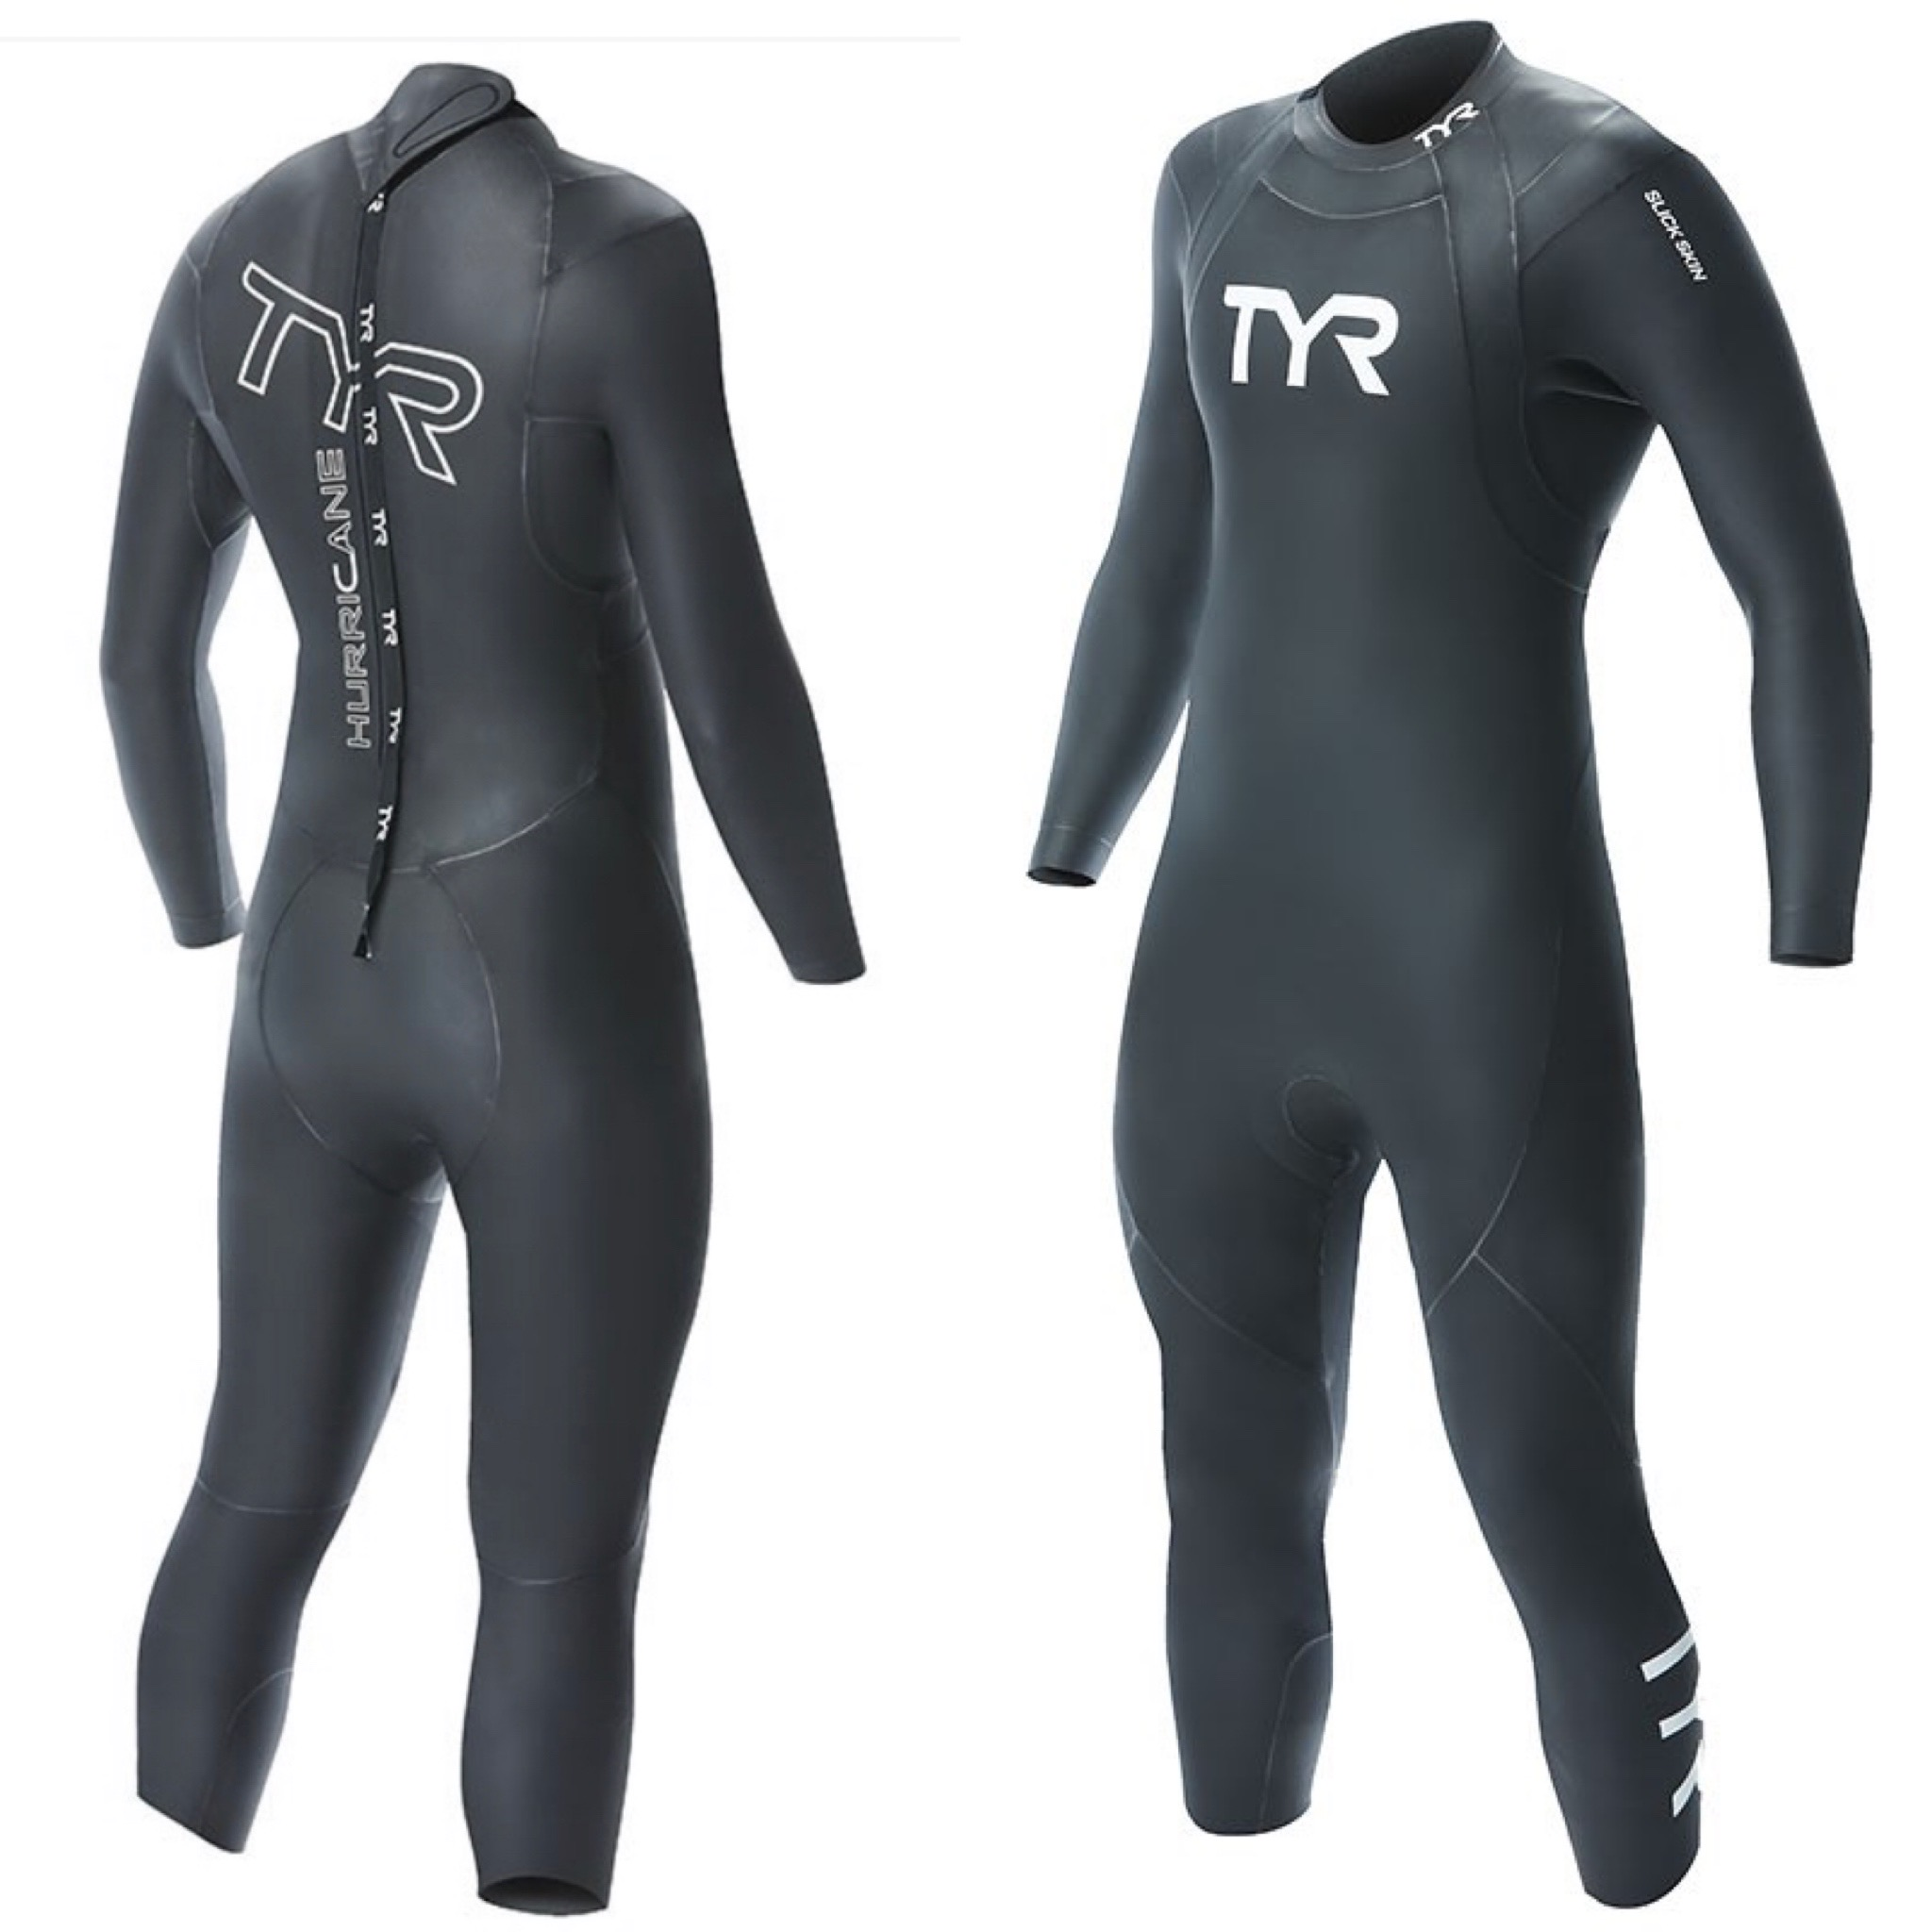 TYR-Hurricane-001-mens-wetsuit-review